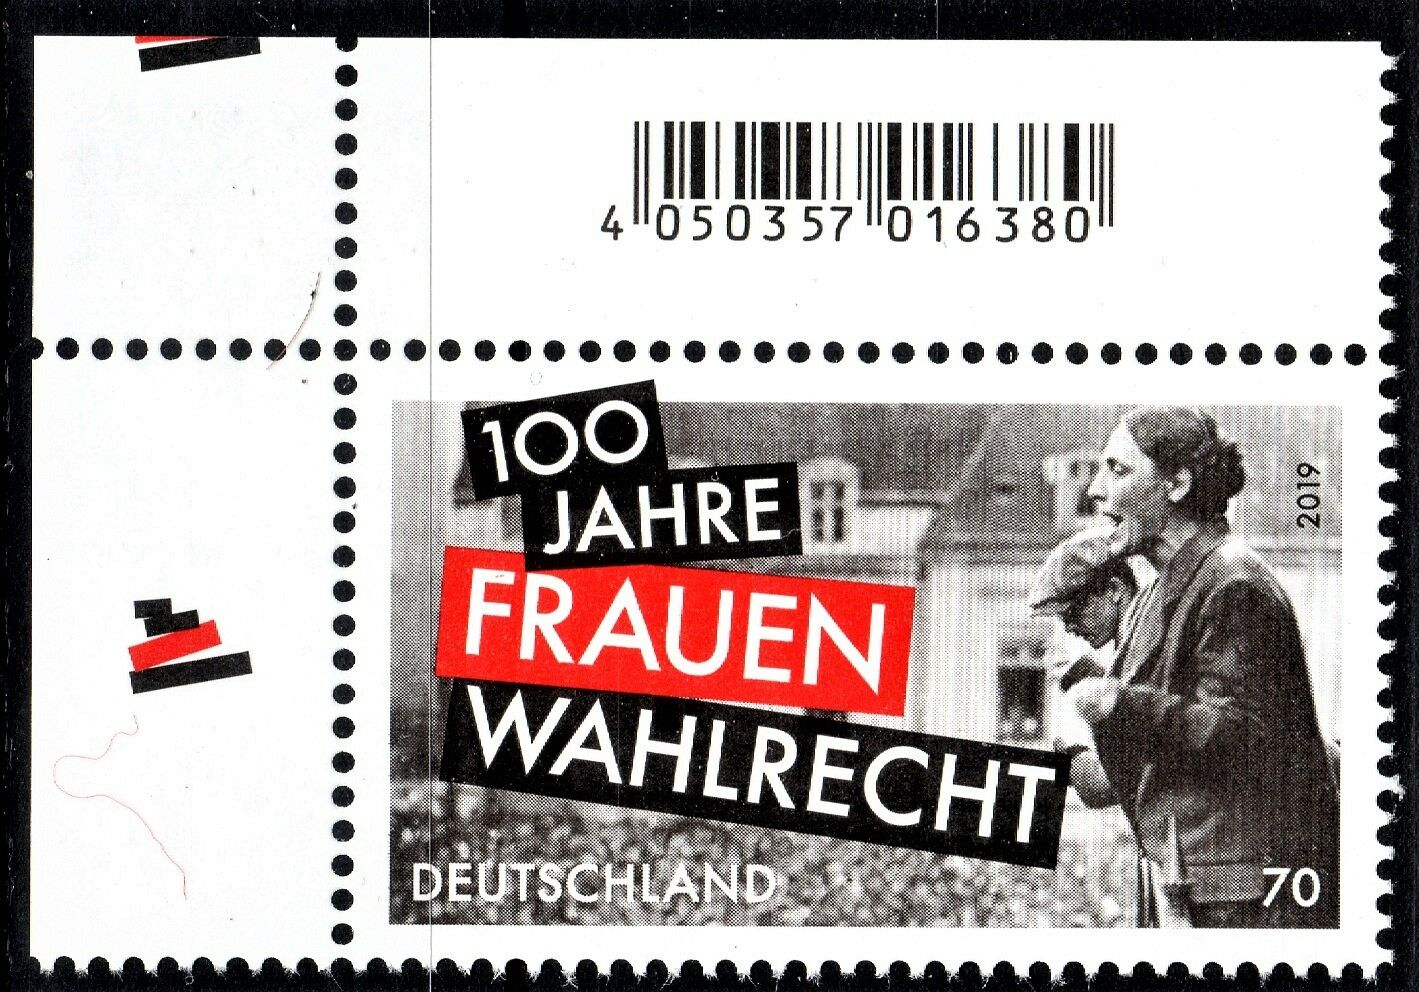 Germany - 100th Anniversary of Women's Suffrage (January 2, 2019)